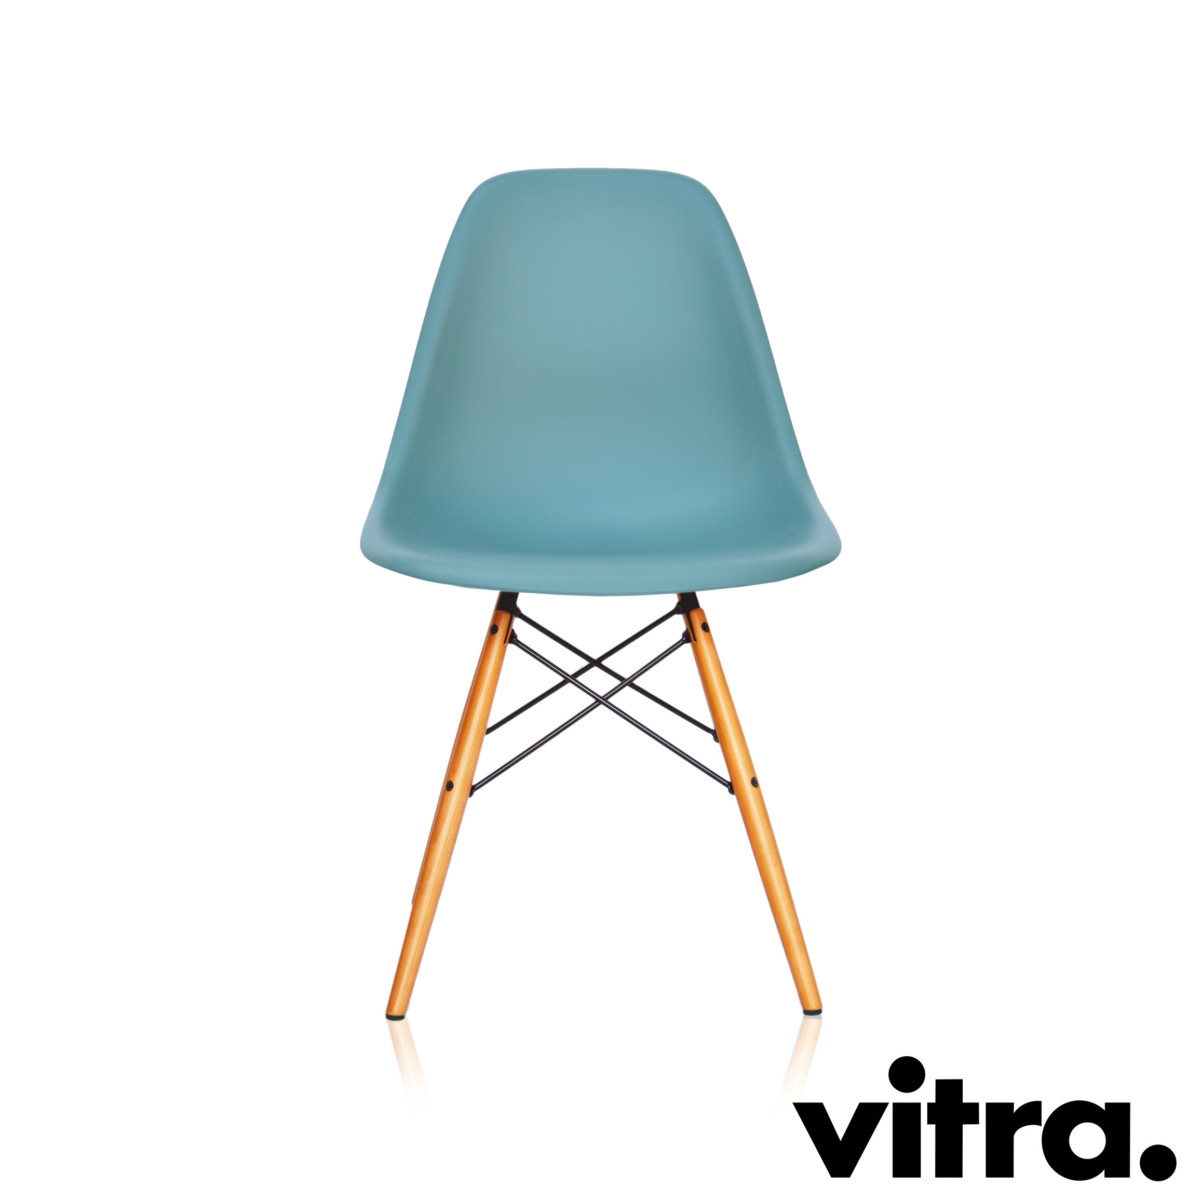 Vitra Eames Plastic Side Chair Dsw Vitra Eames Plastic Side Chair Dsw Ocean 43 Ahorn Neue Höhe